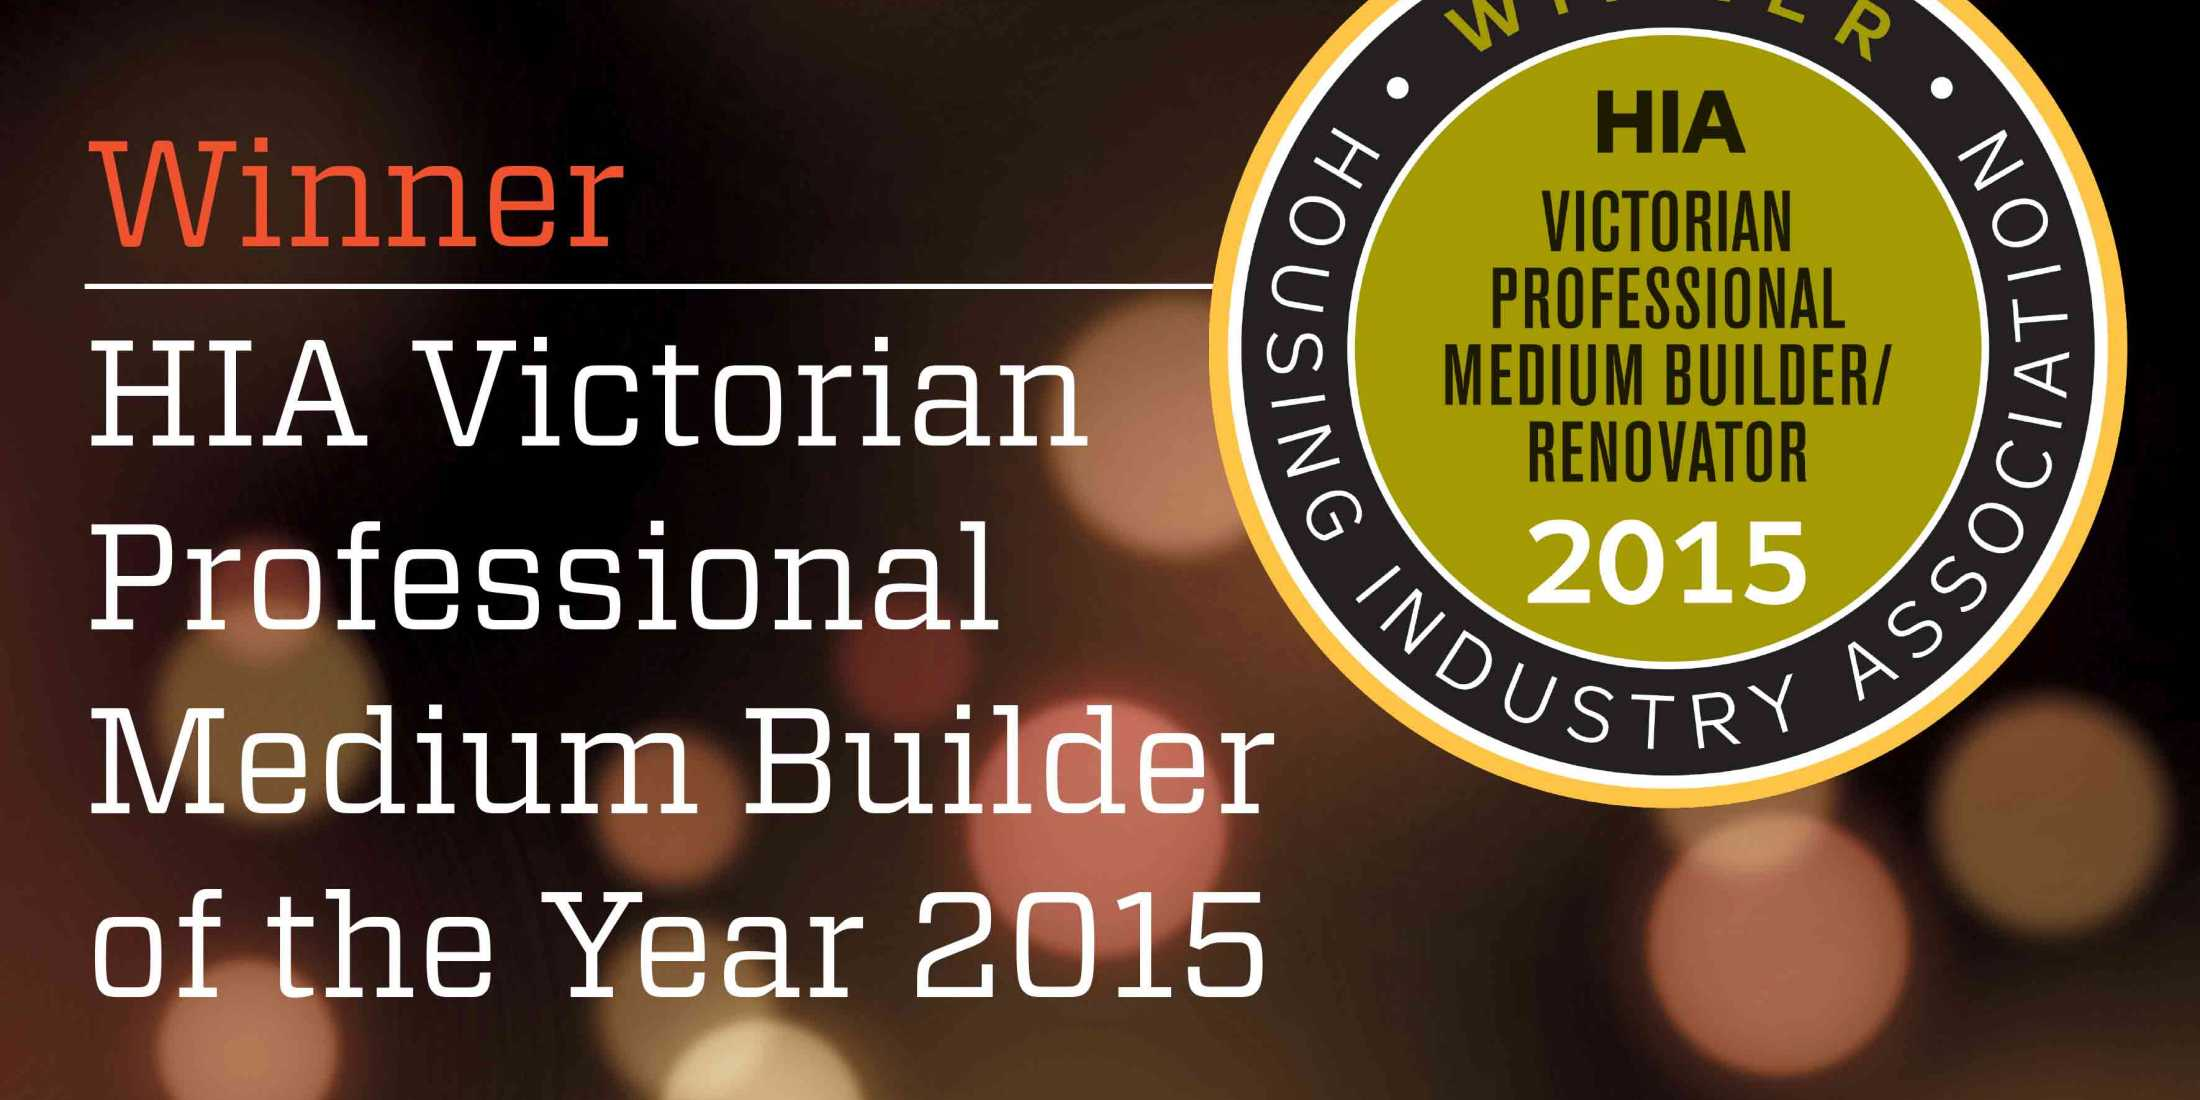 Winner HIA Victorian Professional Medium Builder